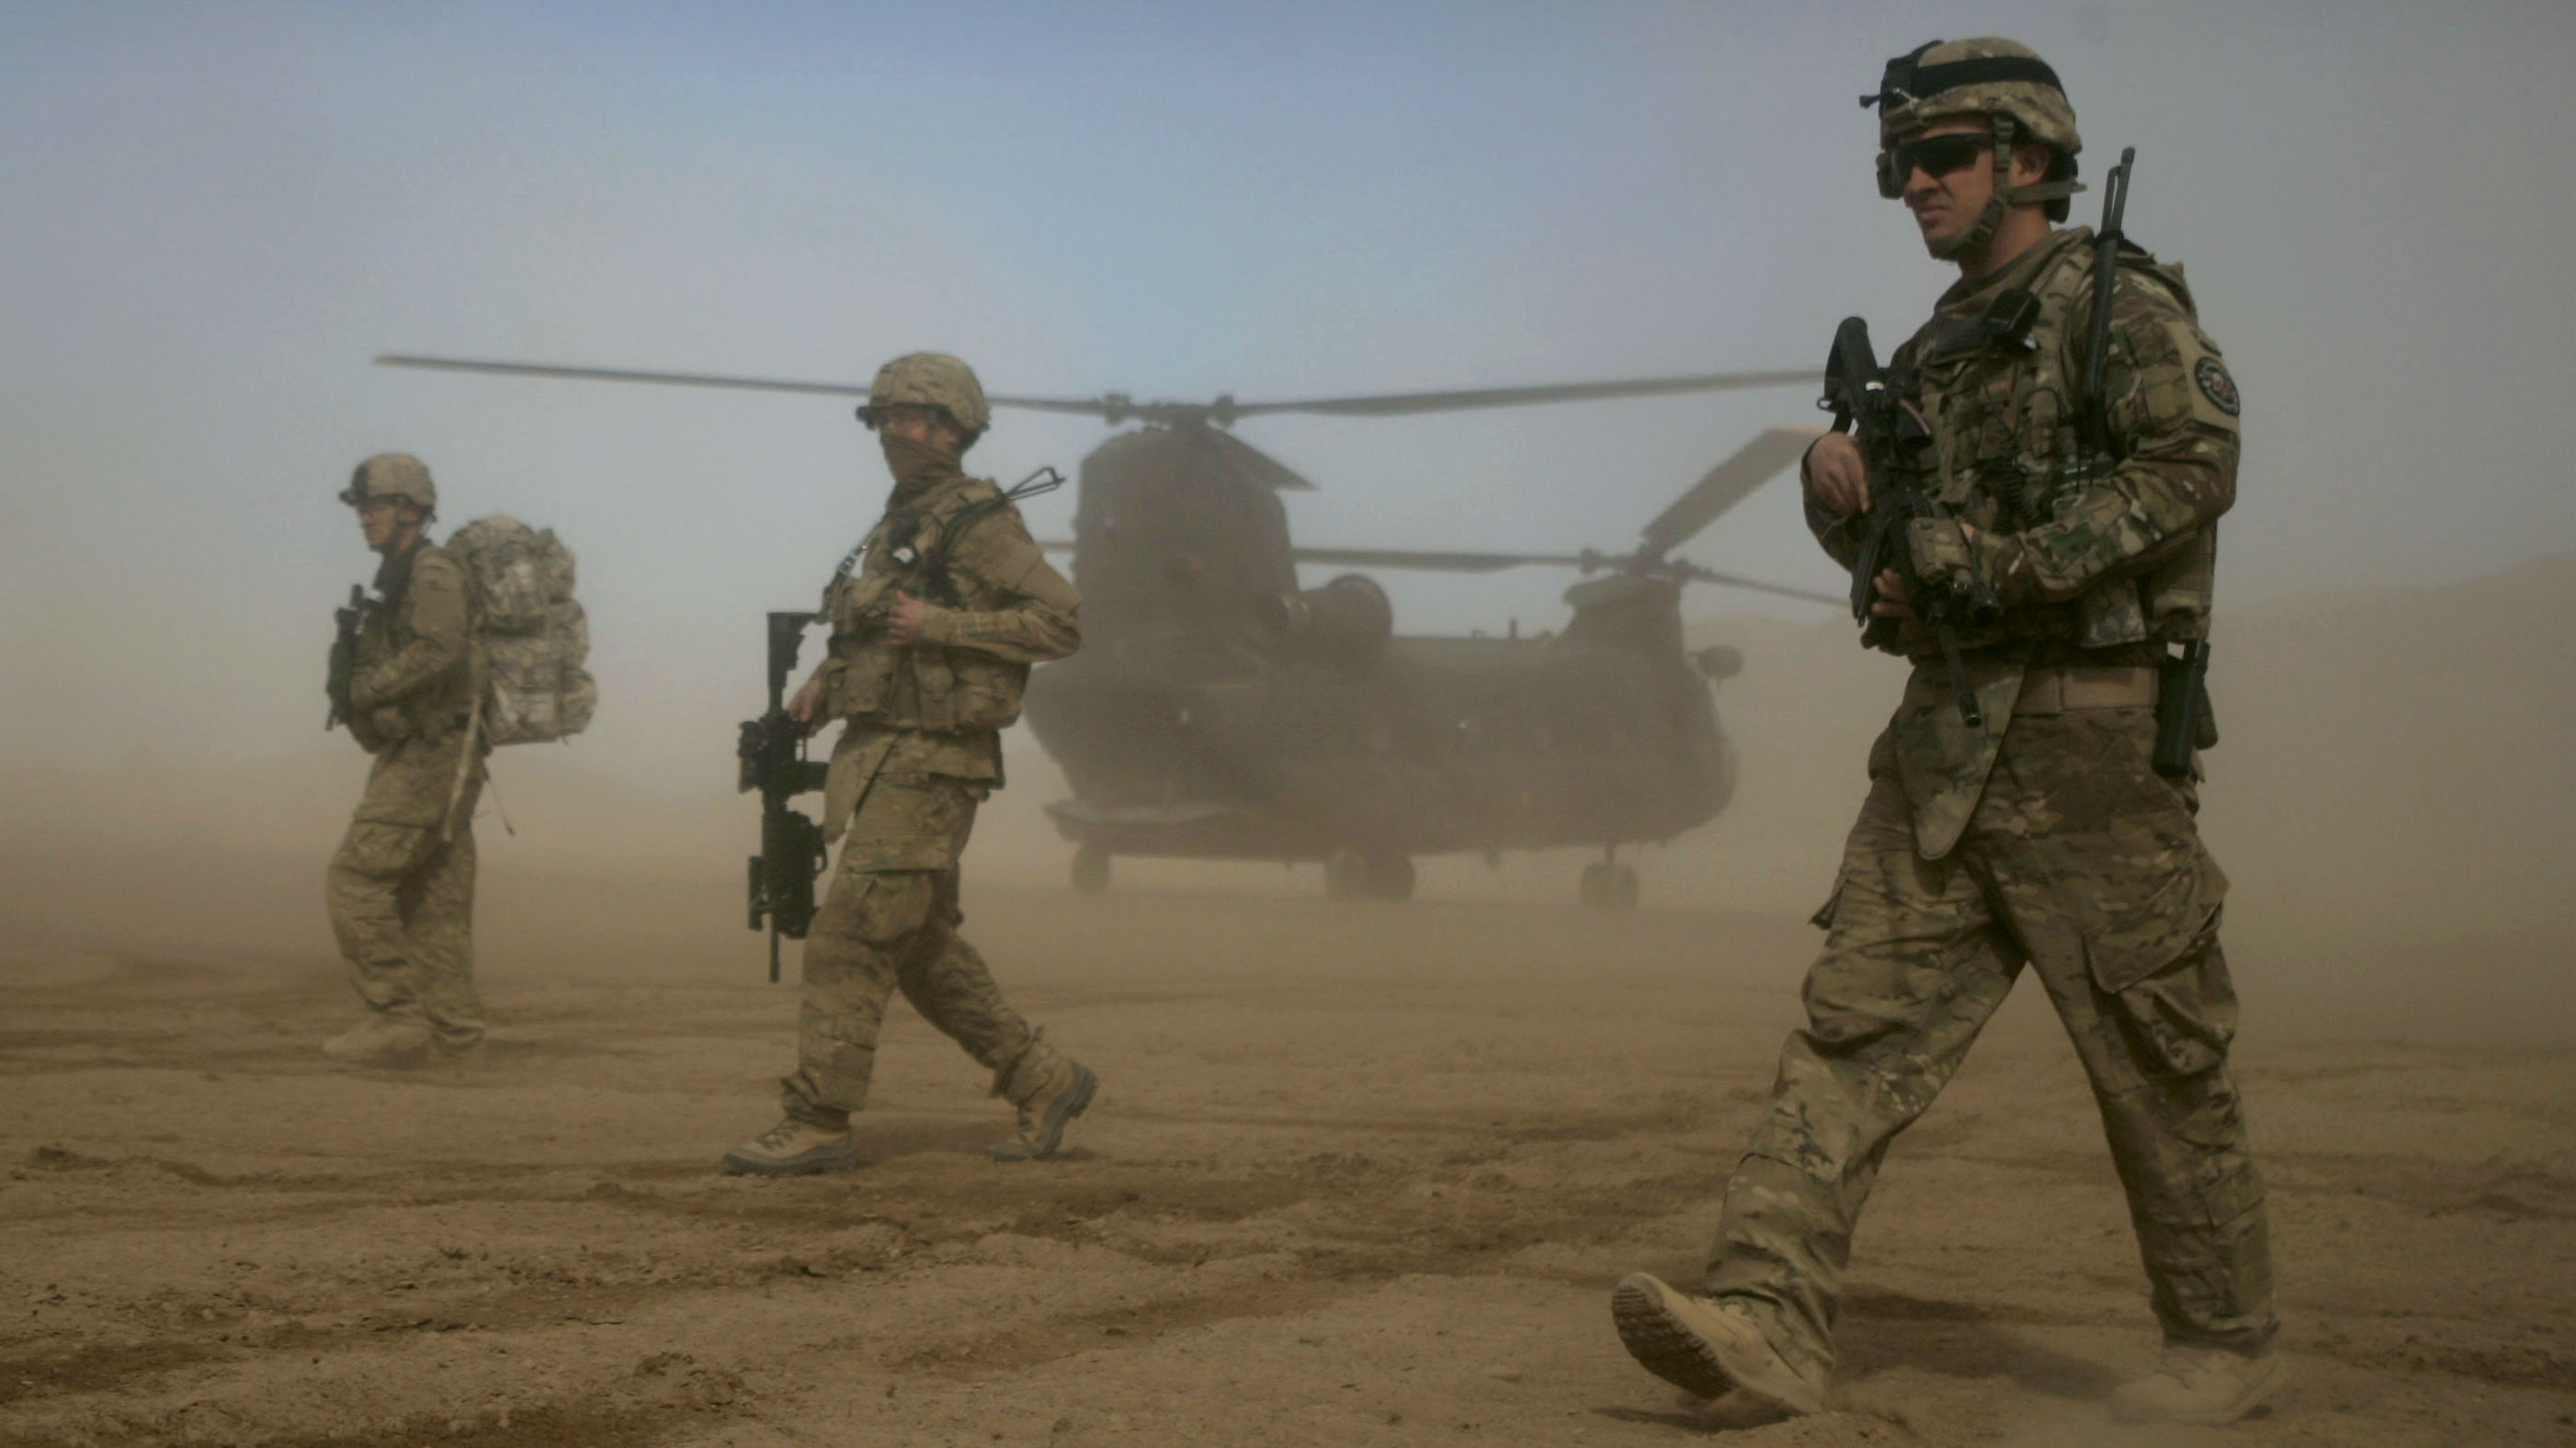 U.S. soldiers part of the NATO- led International Security Assistance Force (ISAF) walks, as a U.S. Chinook helicopter is seen on the back ground near the place where the foundation of a hospital was laid in Shindand, Herat, west of Kabul, Afghanistan, Saturday, Jan. 28, 2012. The foundation of a U.S. military funded 50 beds hospital was laid with the cost of 400, 000 US dollar in Shindand of Herat, the hospital project is expected to be completed in 18 months.